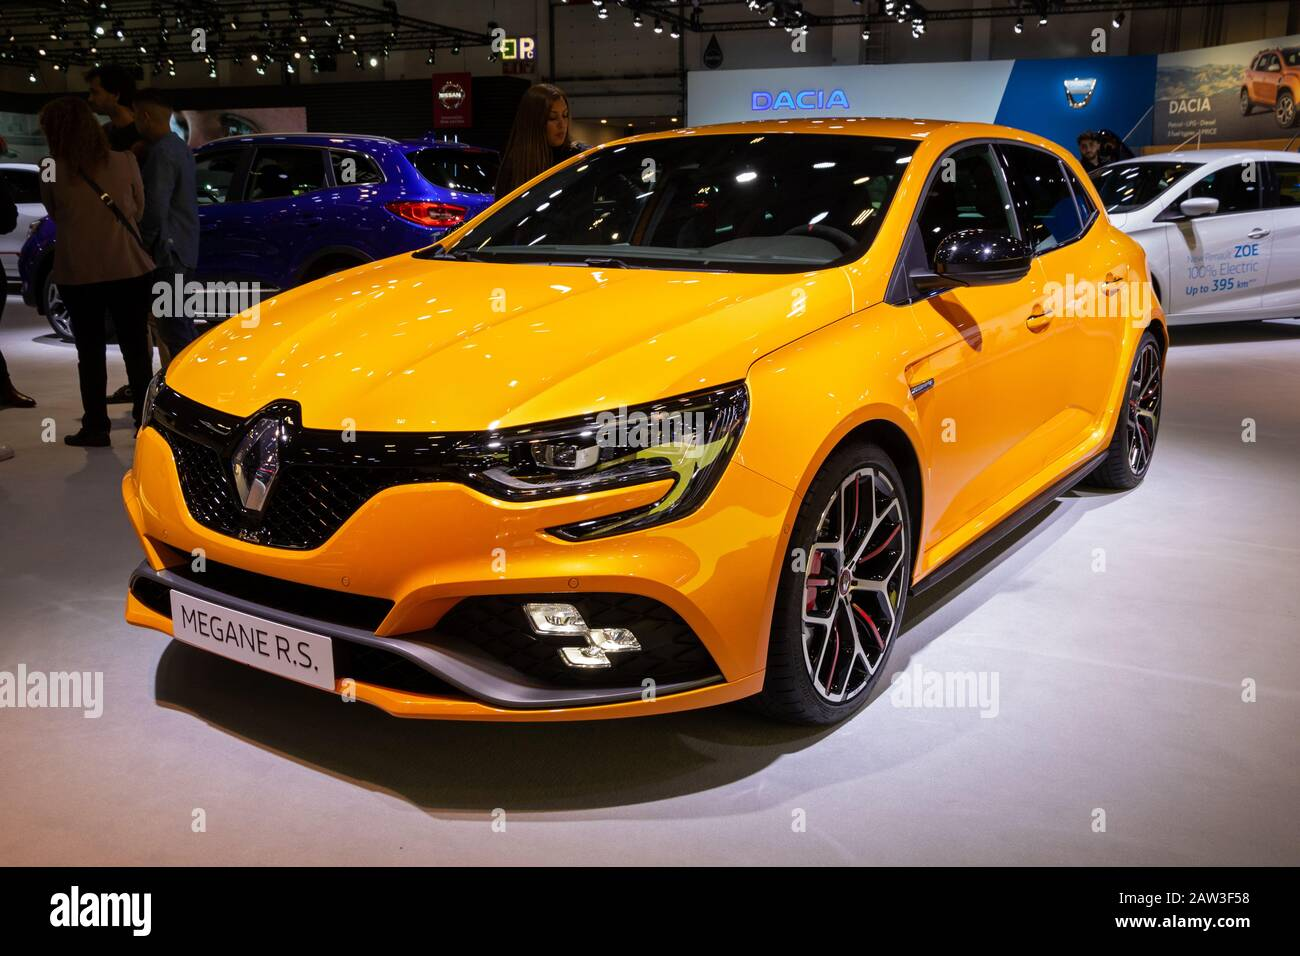 Renault Megane Rs Car High Resolution Stock Photography And Images Alamy